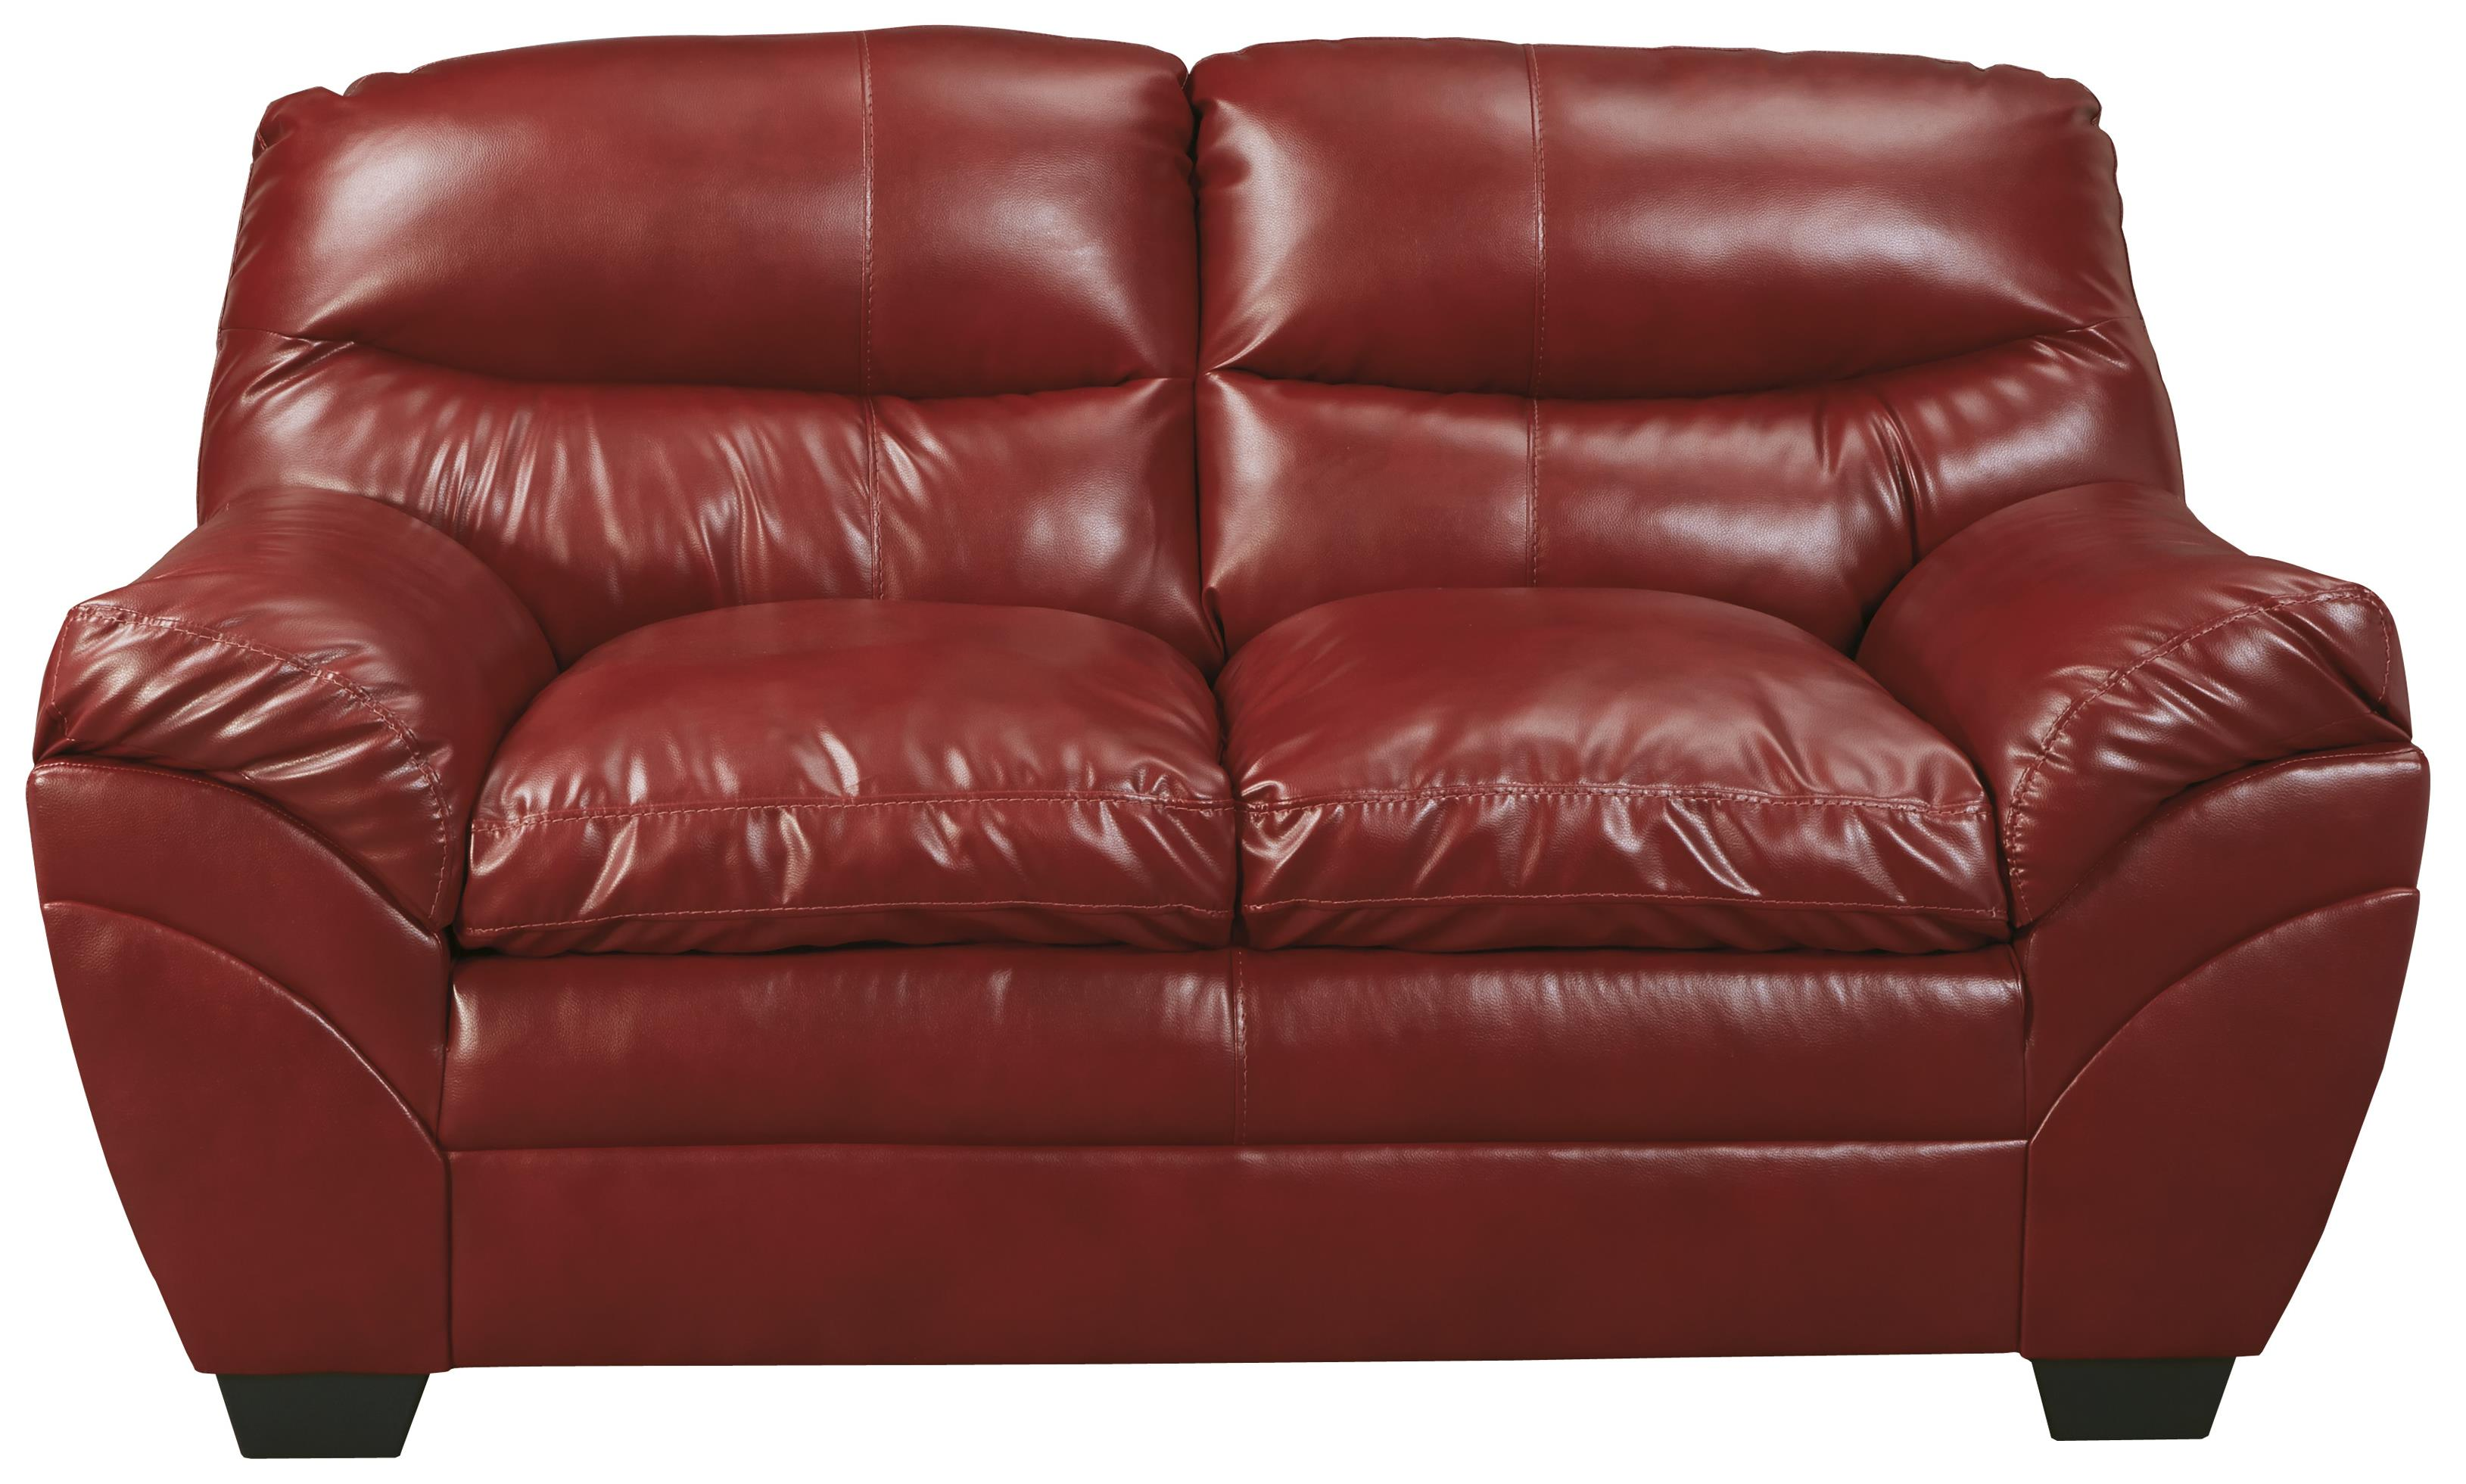 Signature Design by Ashley Tassler DuraBlend® Loveseat - Item Number: 4650035